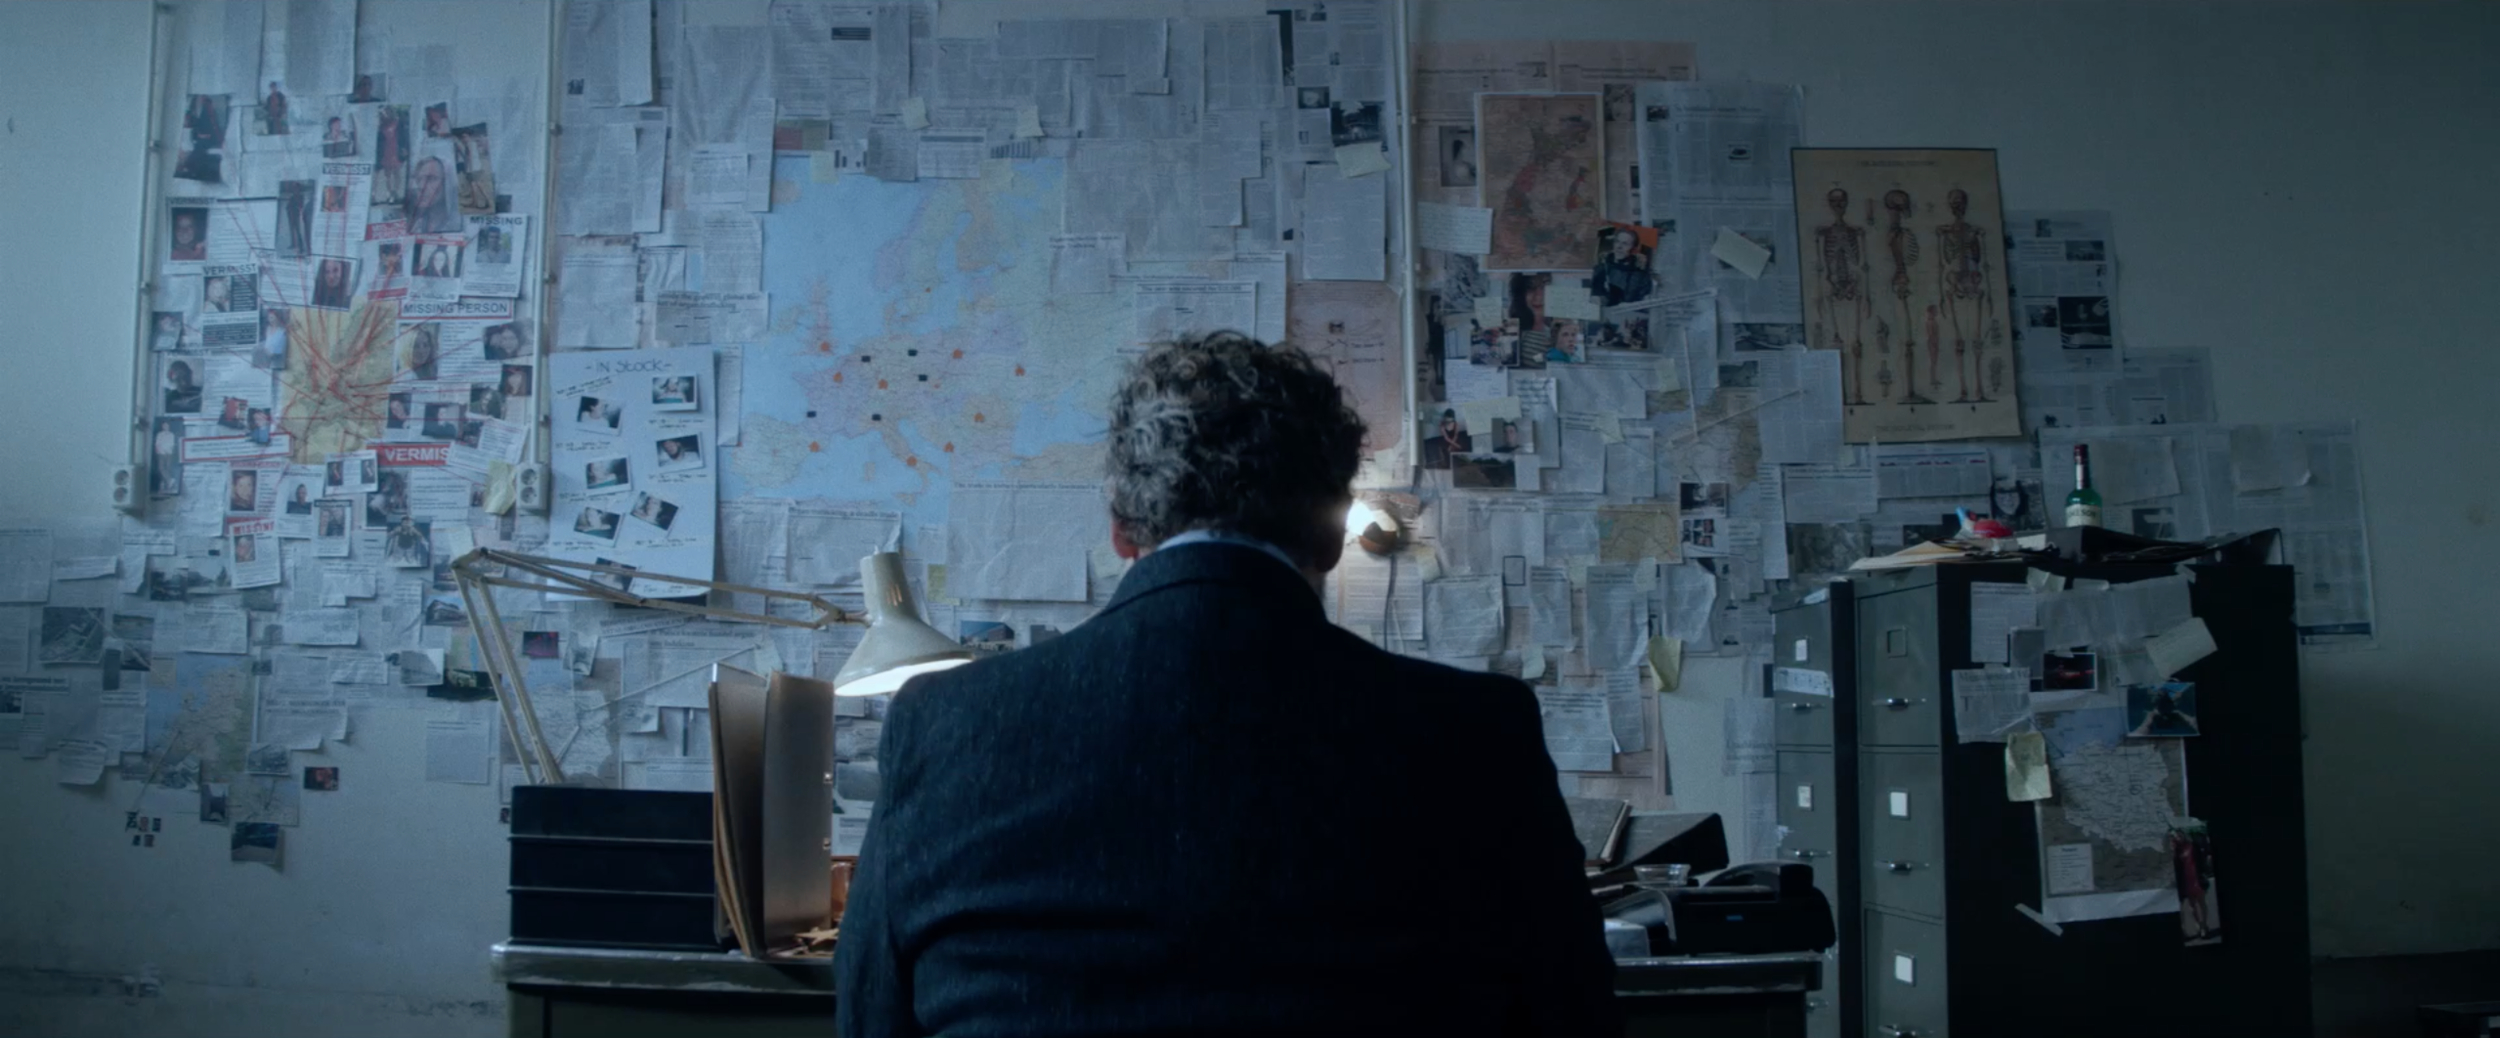 Broker is a thriller directed by David-Jan Bronsgeest with actor Yorick van Wageningen in the lead.It's developed with Dutch public broadcaster BNN and was released in 2015, winning the Tuschinski Award for Best Student Film.